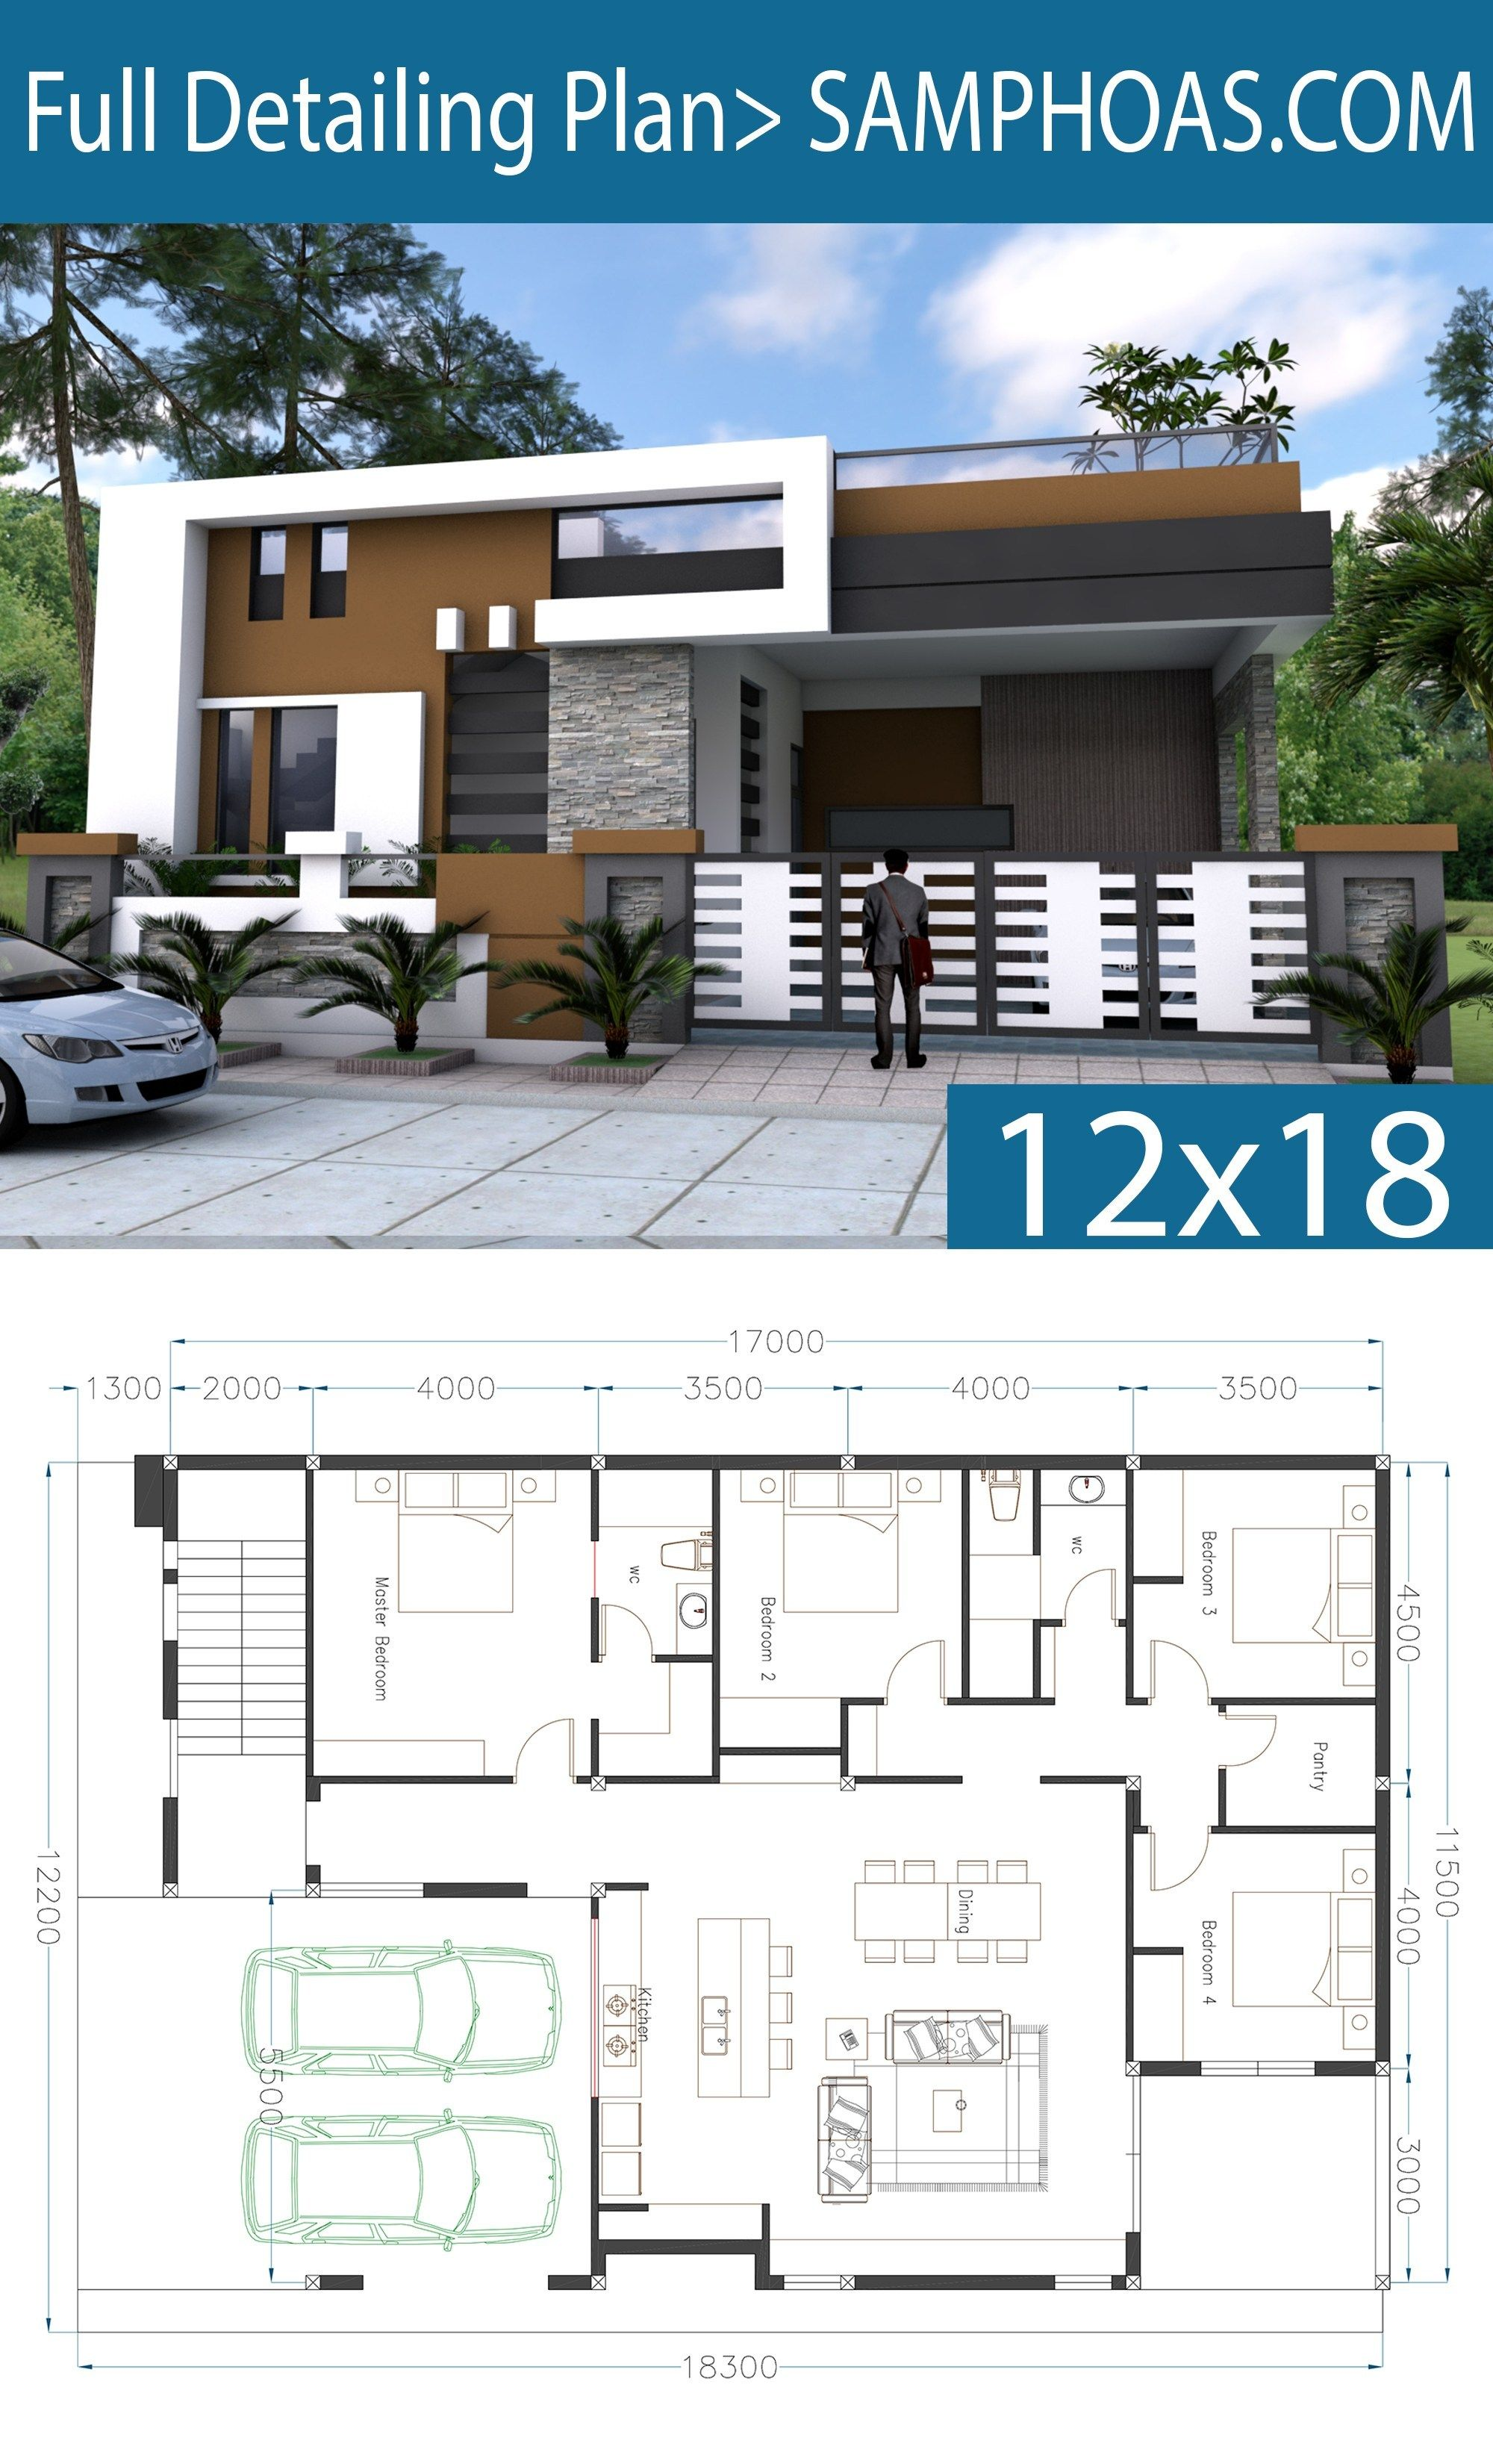 One Story House Plan 40x60 Sketchup Home Design This Villa Is Modeling By Sam Architect With 1 Stories House Design Pictures House Plan Gallery House Layouts